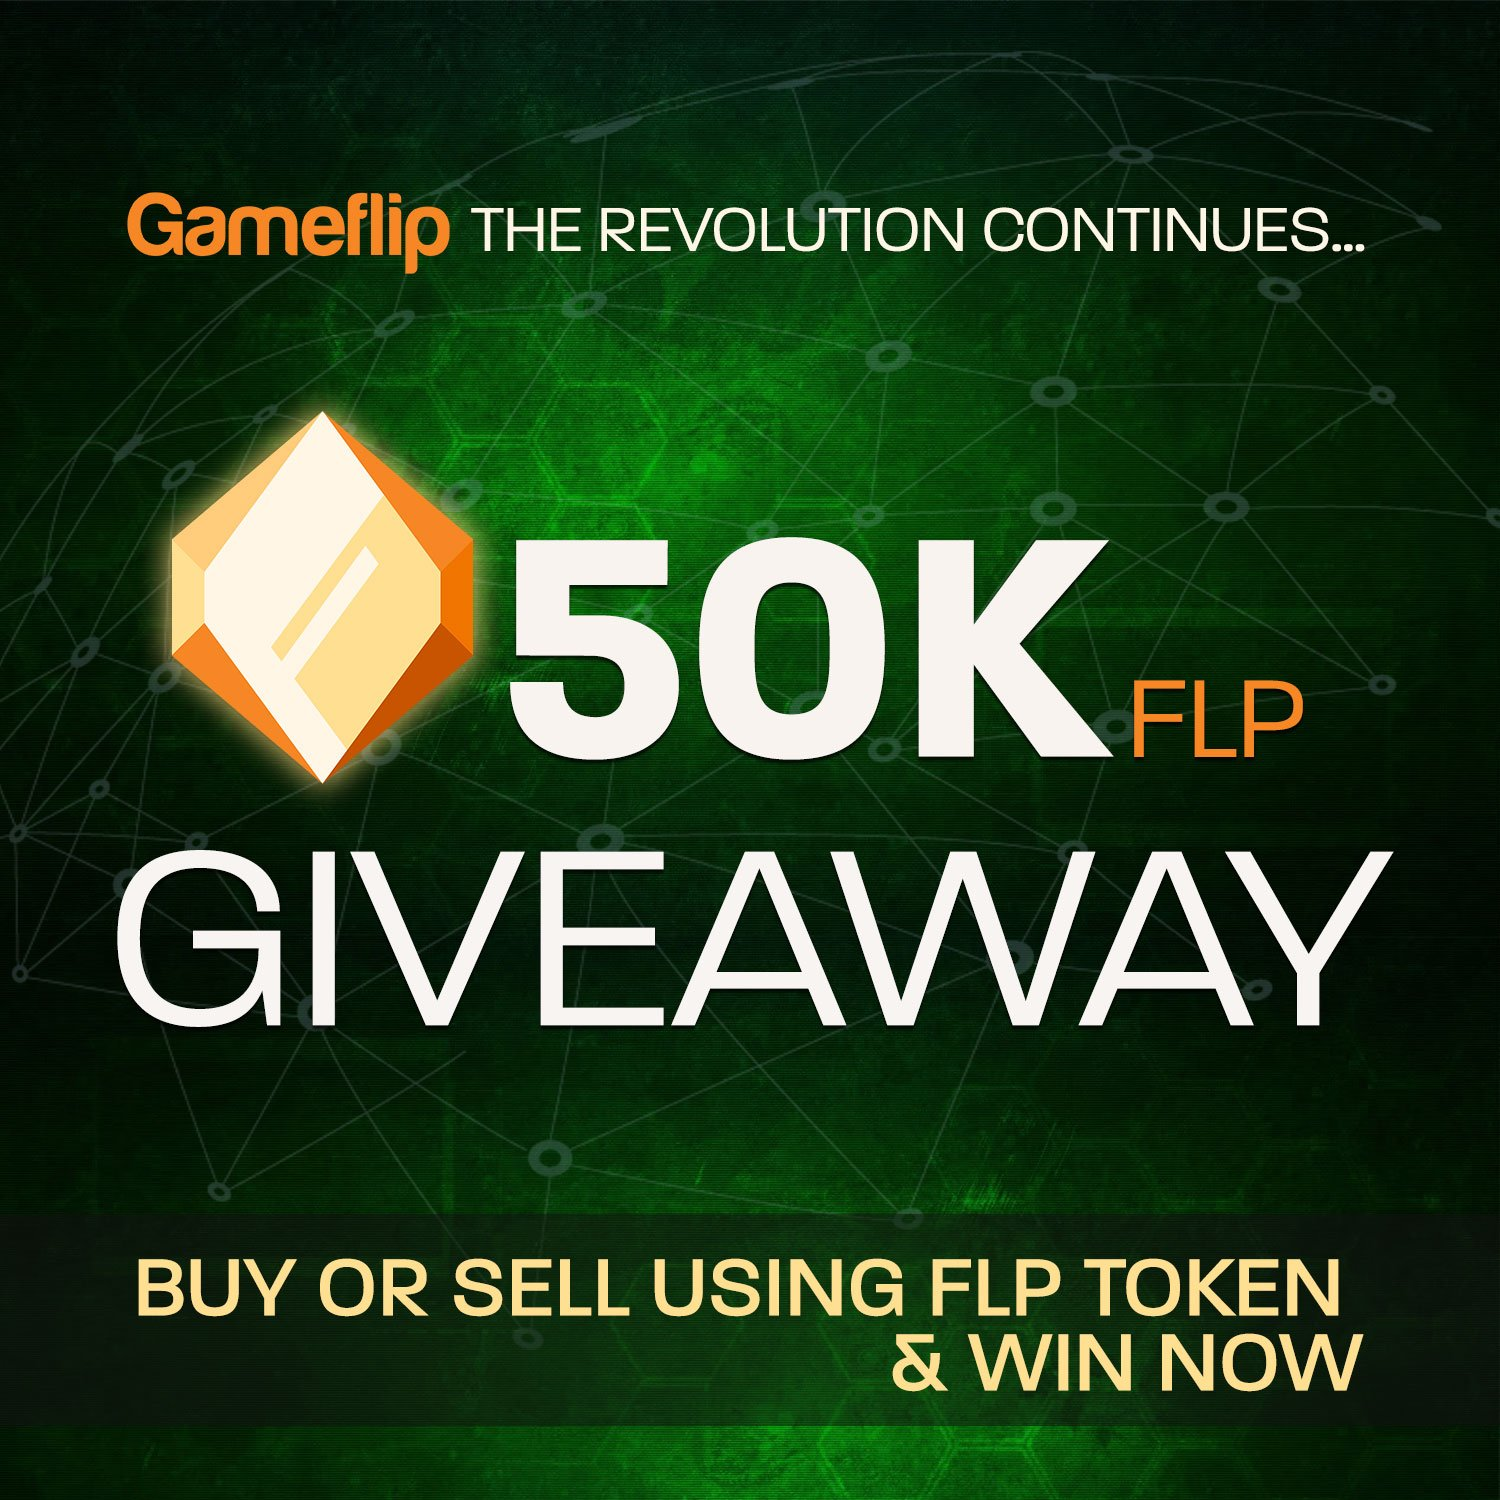 Whhhaaat? A new 50k FLP Giveaway?! Yes! We have a new FLP giveaway